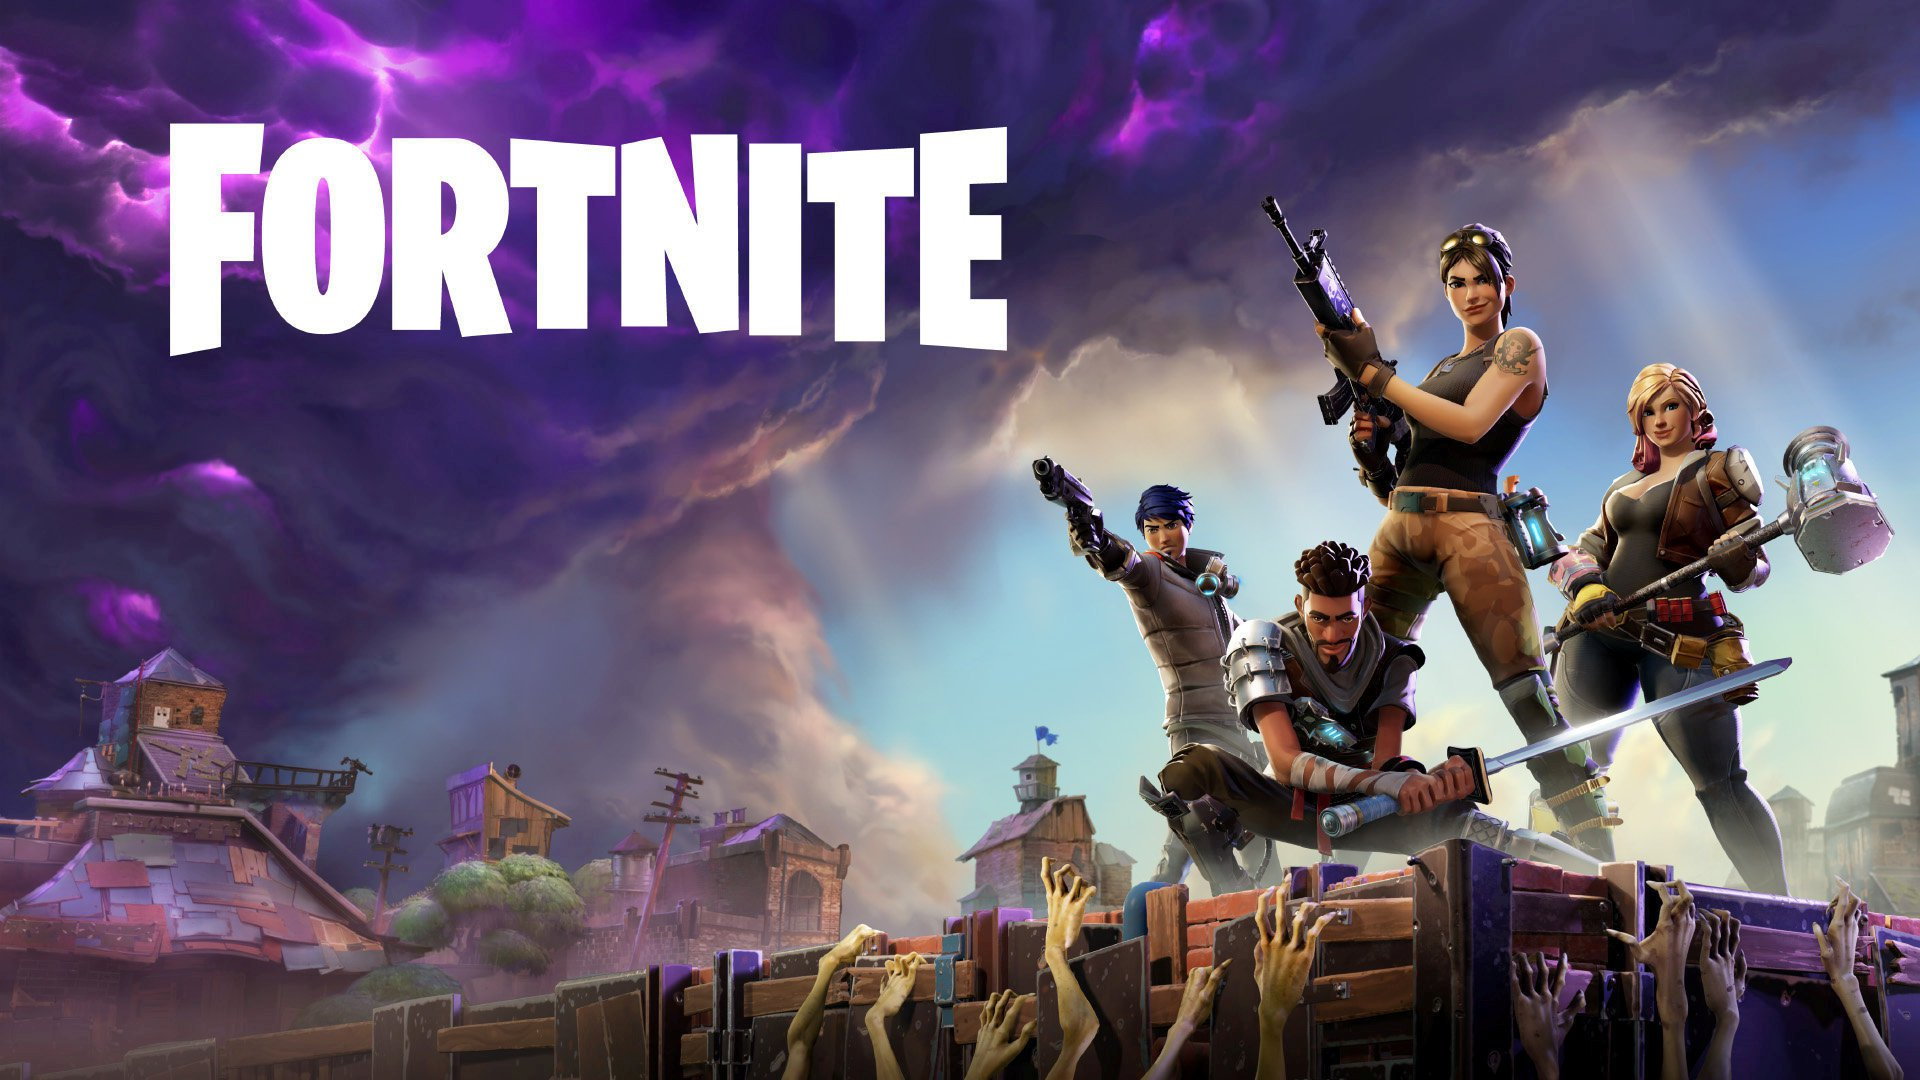 """Still from the successful computer game Fortnite. Families have been left furious by a """"scam"""" video game festival with """"depressing"""" attractions that left kids in tears and parents demanding refunds. See SWNS story SWCAfortnite. The two-day Fornite Live event - based on the hugely popular online video game of the same name - was billed as the """"event of the year"""" for fans. Organisers Exciting Events promised the """"ultimate Fortnite Battle Royale"""" with """"crazy competitions, awesome activities...and much more"""" this weekend. Visitors to the festival in Norwich, Norfolk were charged up to ?22 for a ticket and a further ?20 each for wristbands to take part in the attractions. But hundreds of fans are now believed to have asked for their money back after they were confronted with long queues and disappointing amusements."""